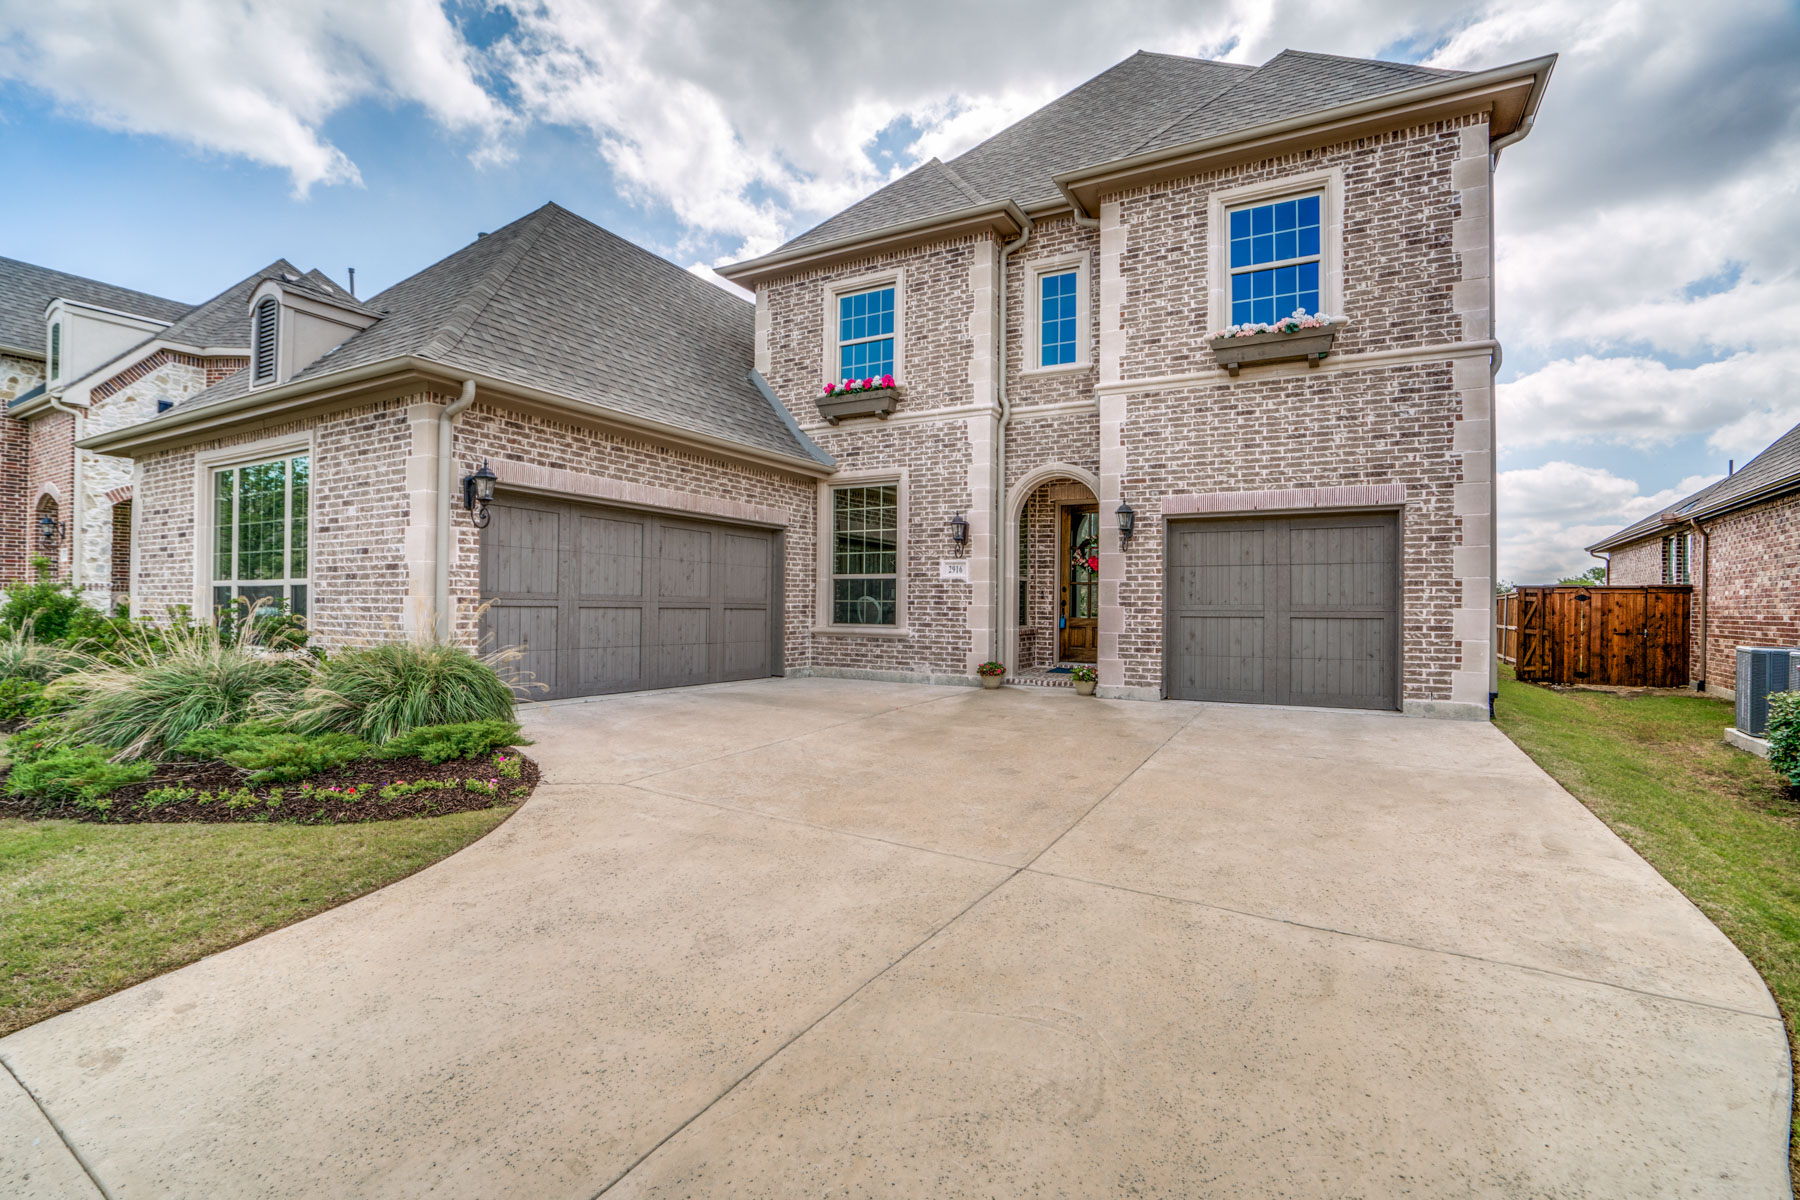 Villa per Vendita alle ore 2916 Ballater Ct., The Colony The Colony, Texas, 75056 Stati Uniti